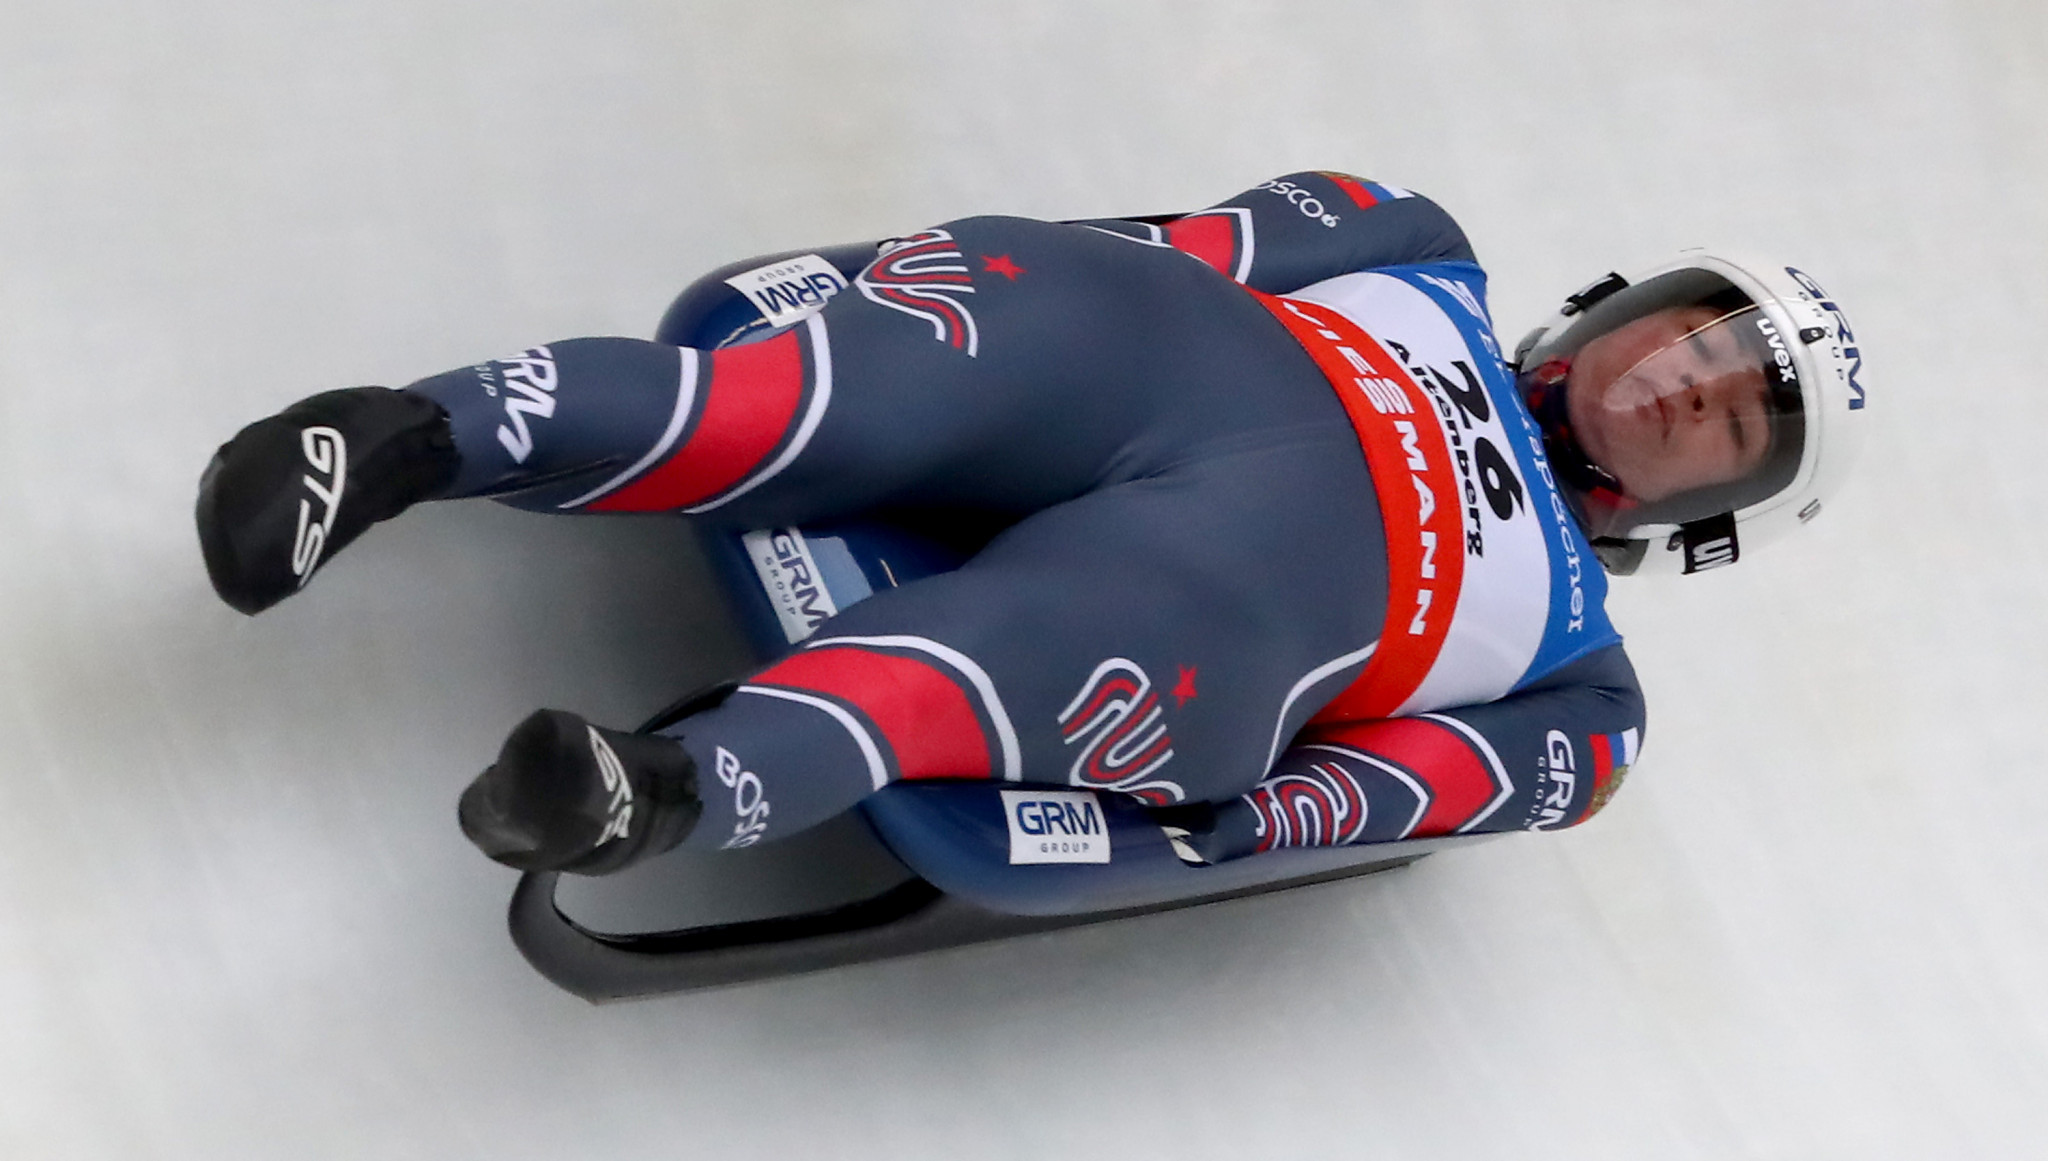 Tatyana Ivanova of Russia earned her fifth European luge title ©Getty Images